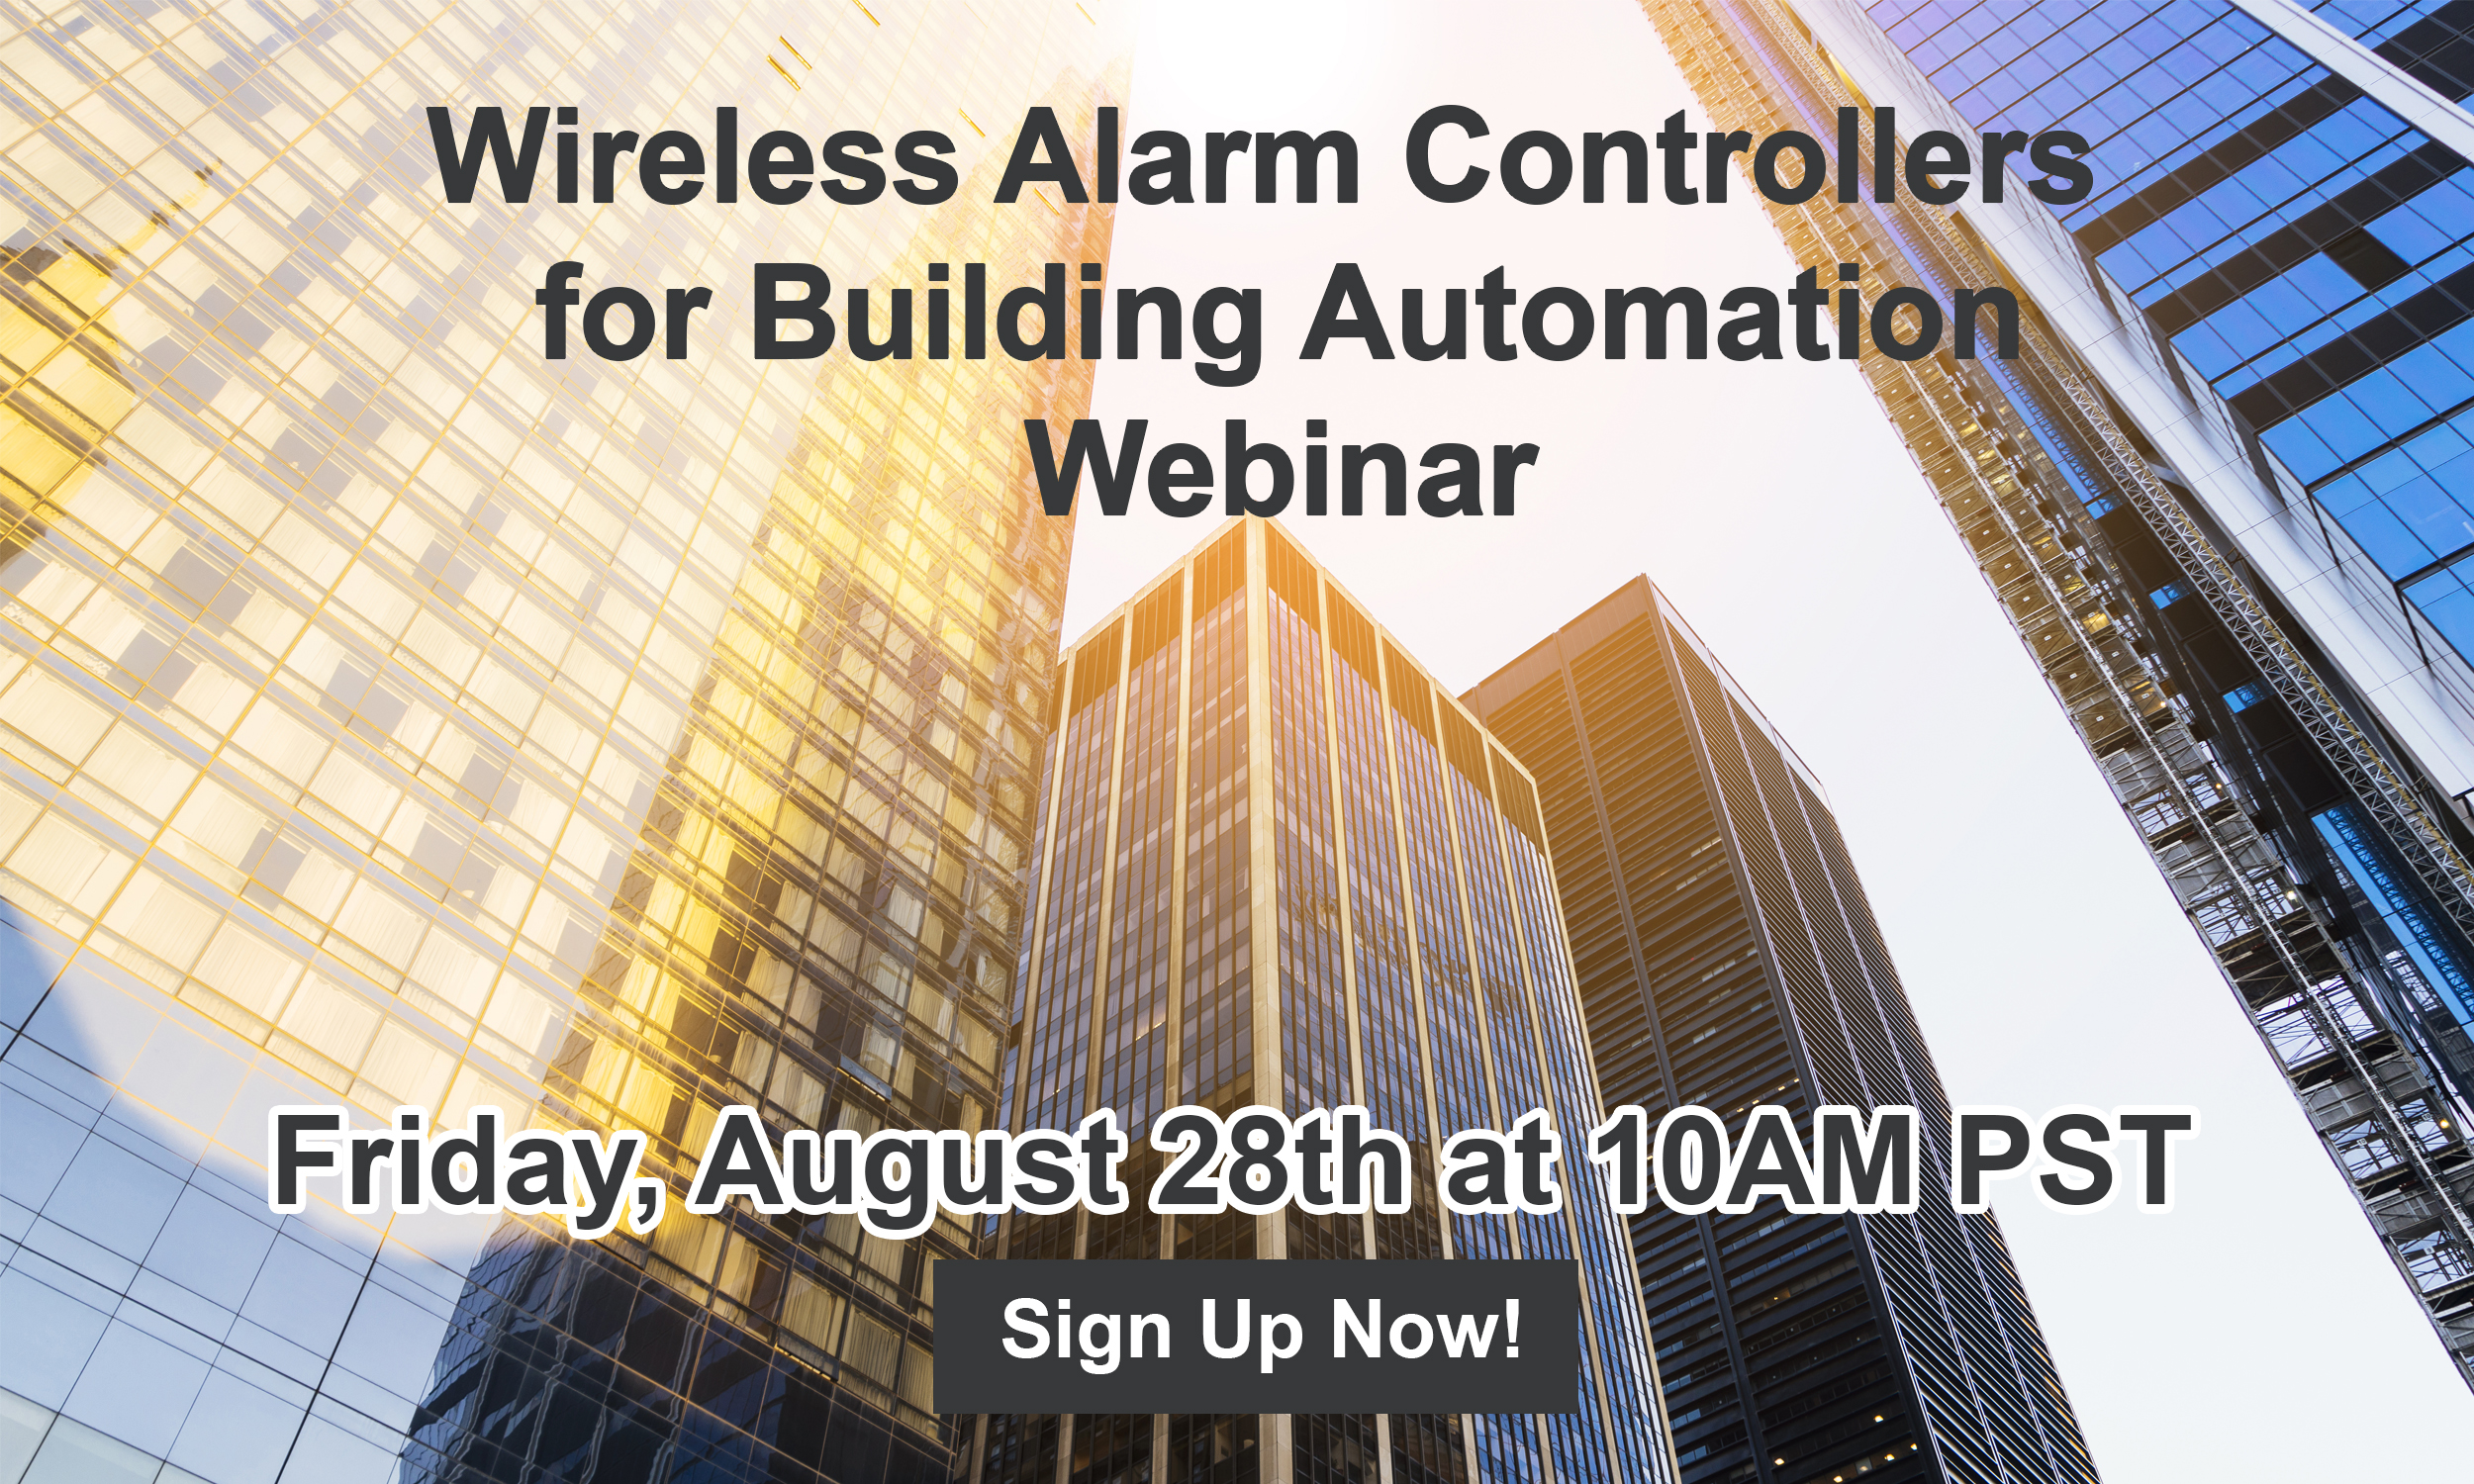 Sound The Alarm! Wireless Alarm Controllers for Building Automation